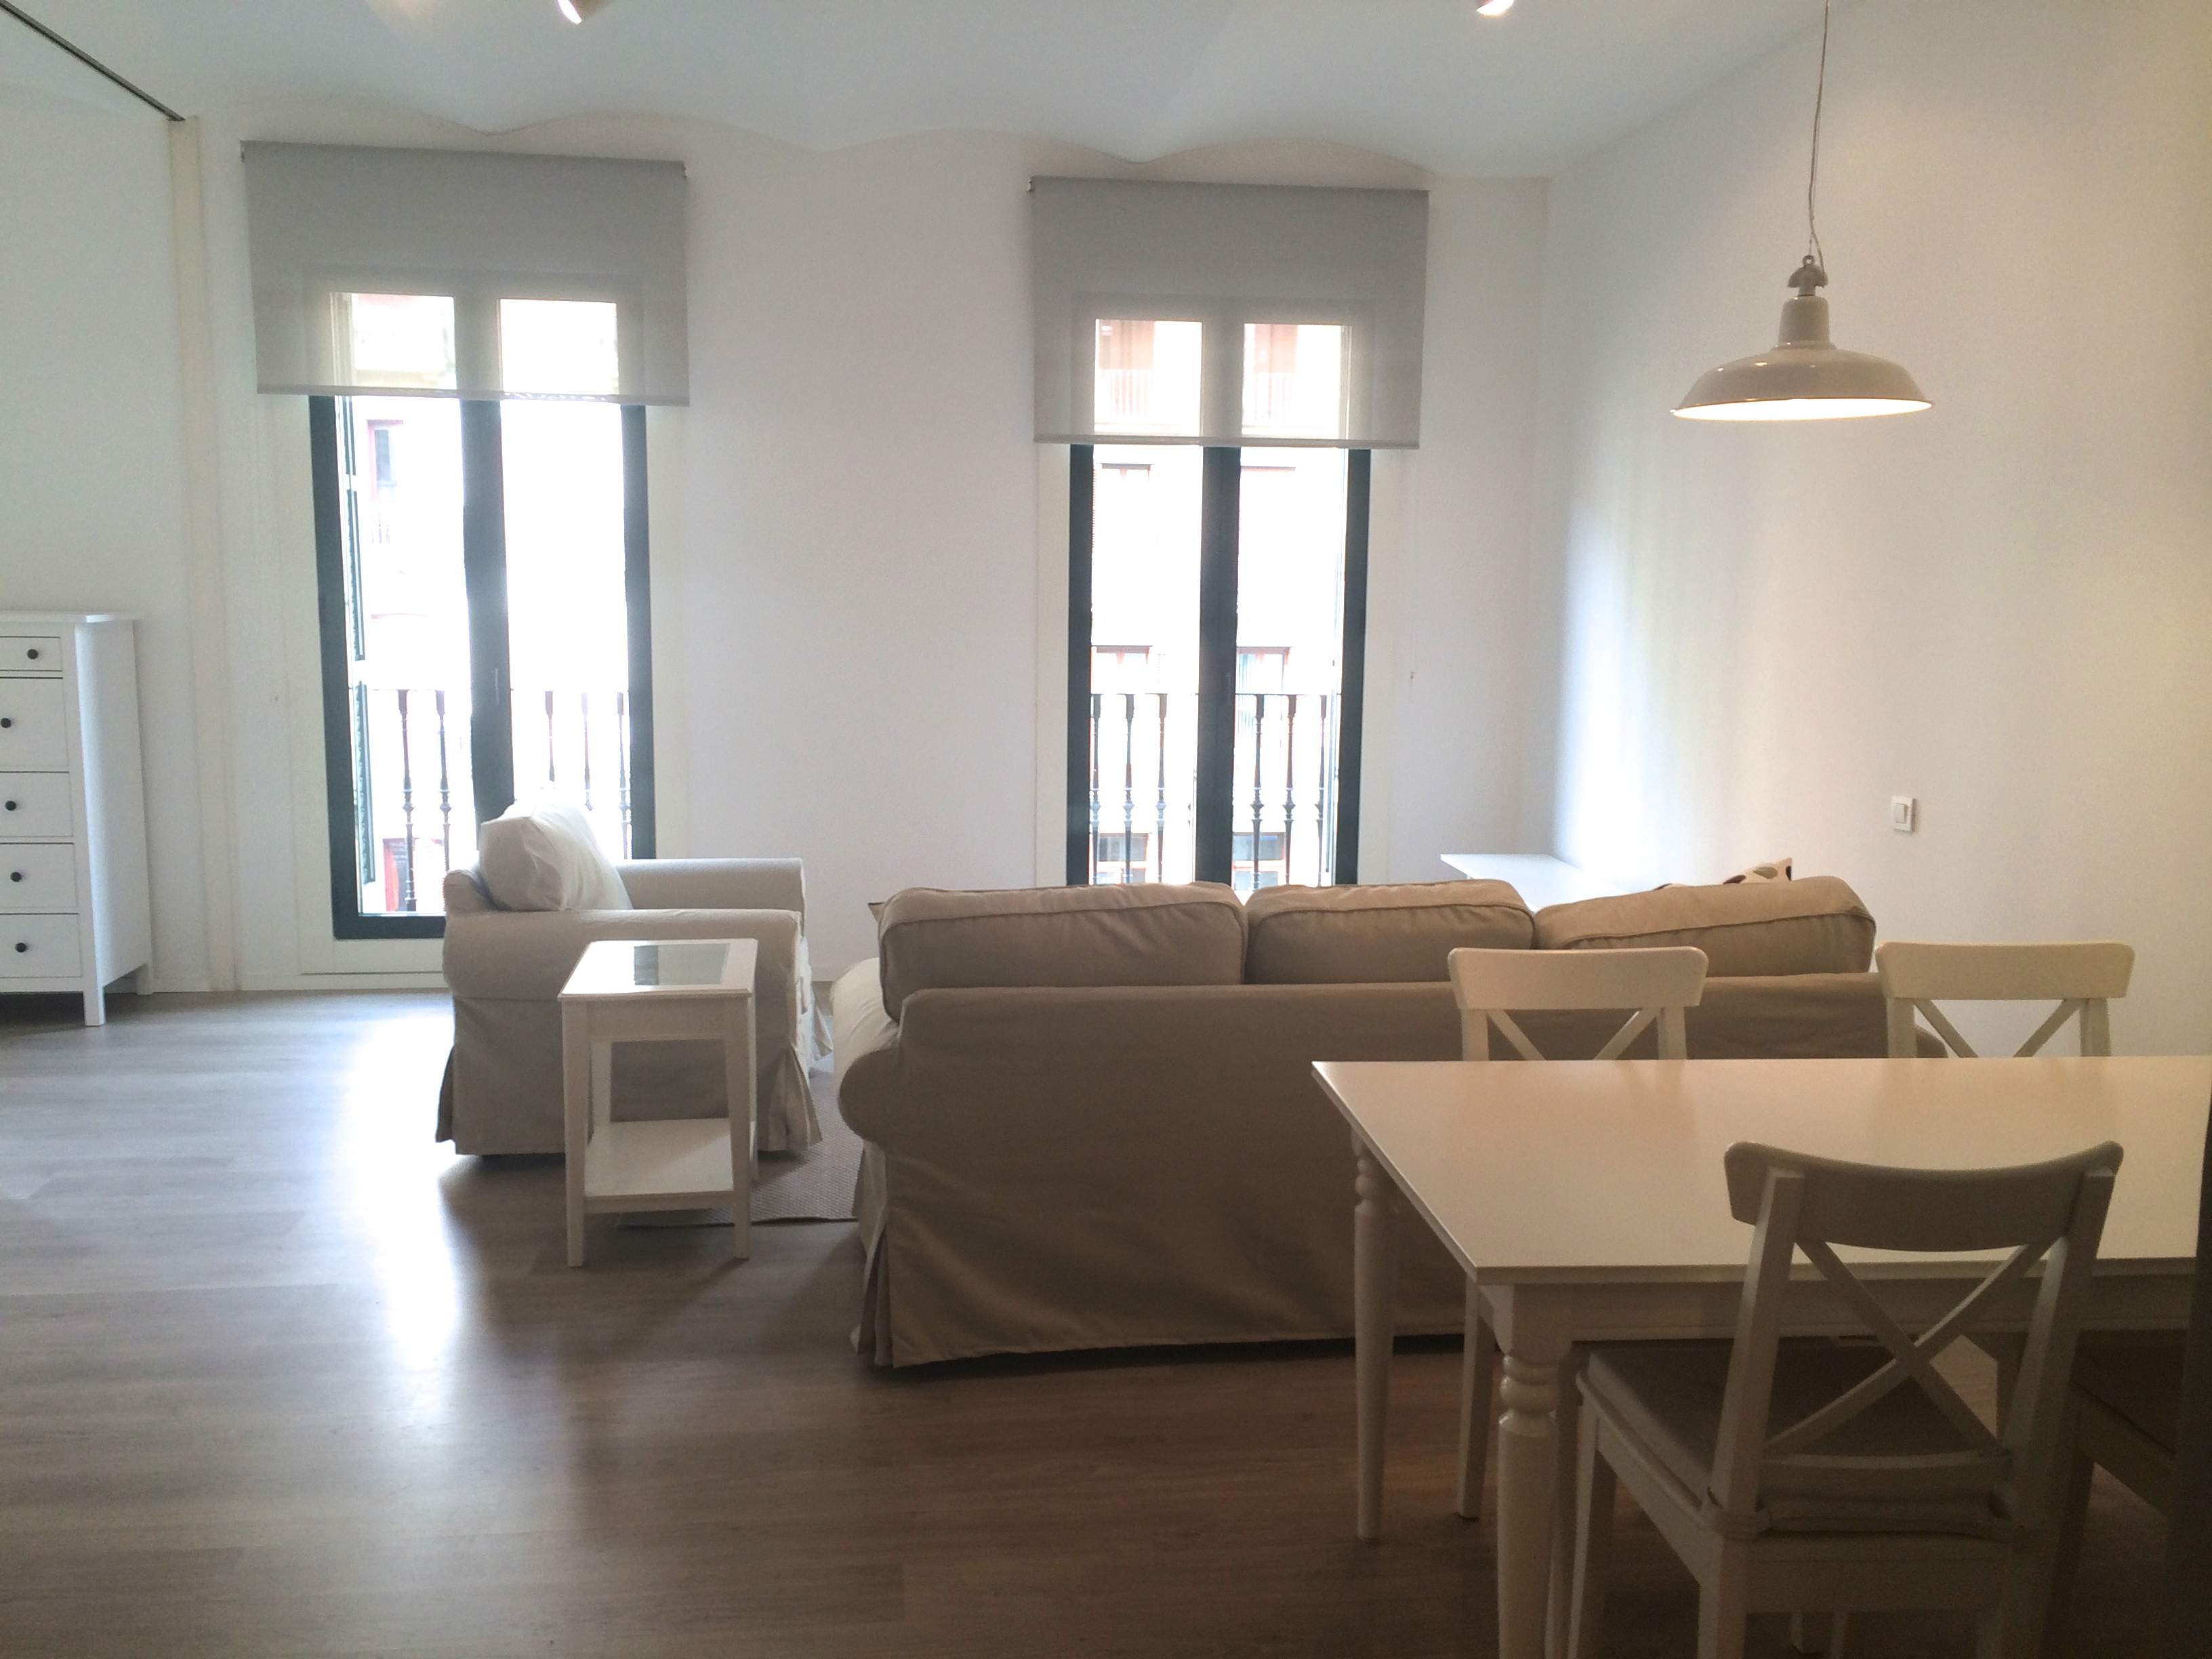 2 bedroom furnished apartment for rent in eixample barcelona for Furnished apartments